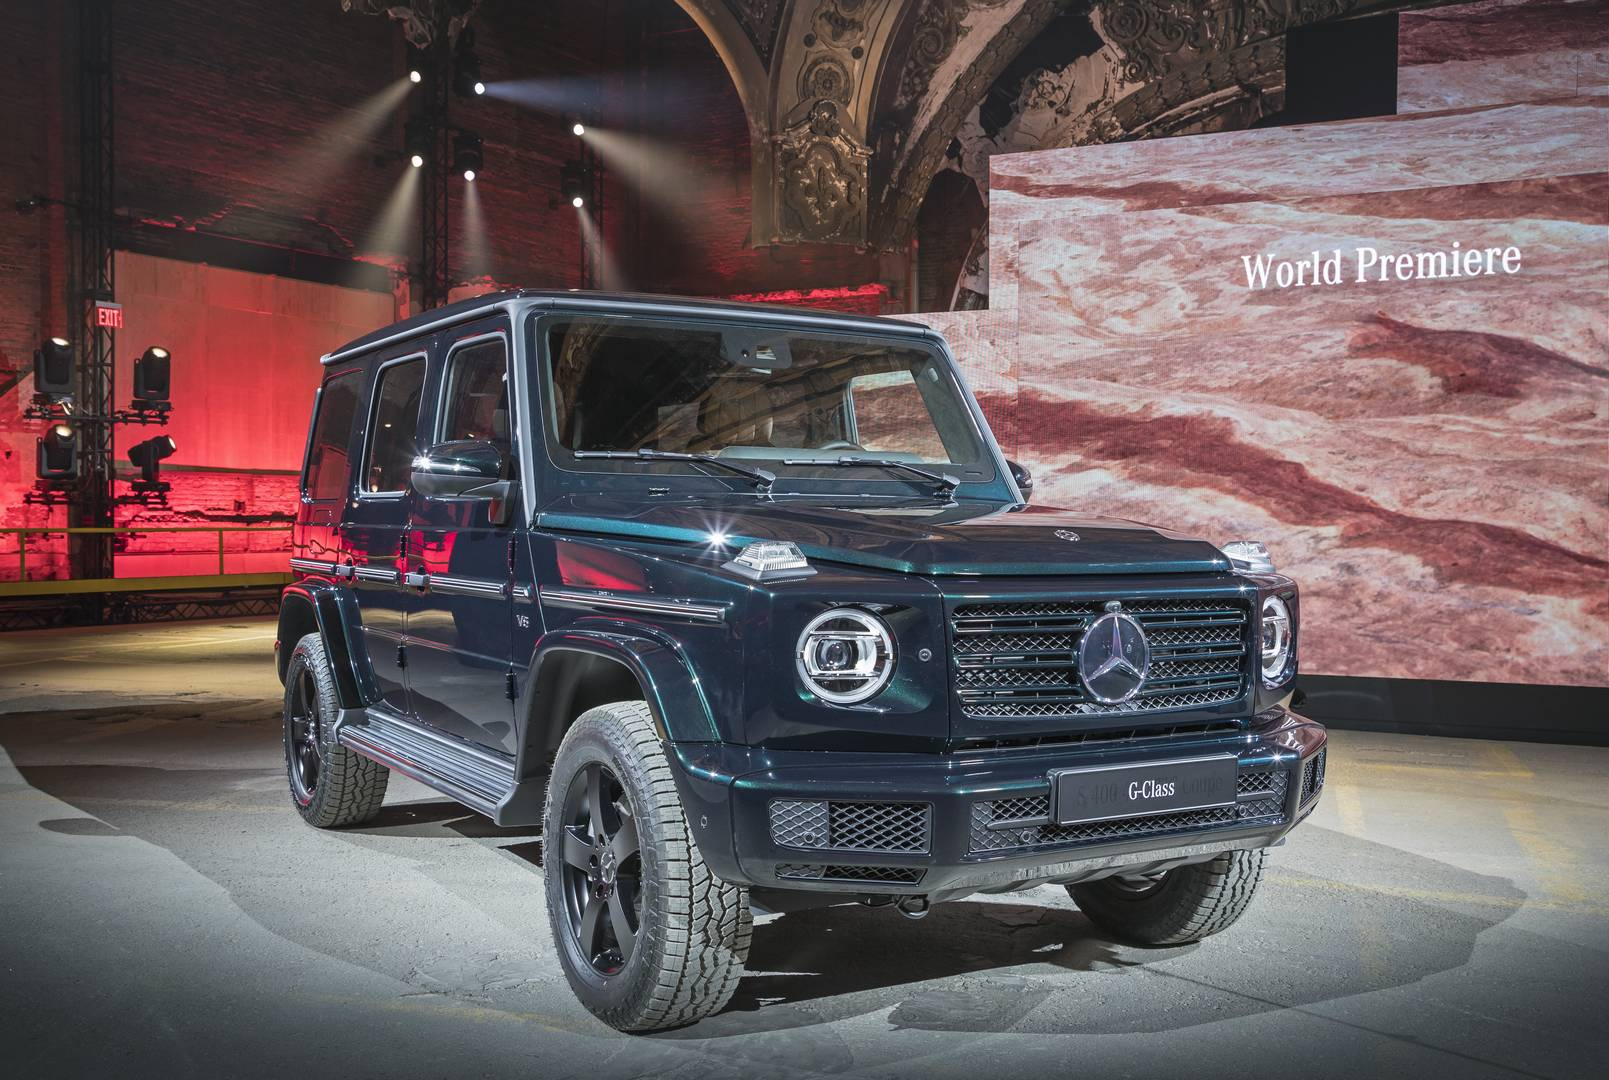 detroit 2018 what else did we learn at the new g class unveil gtspirit. Black Bedroom Furniture Sets. Home Design Ideas